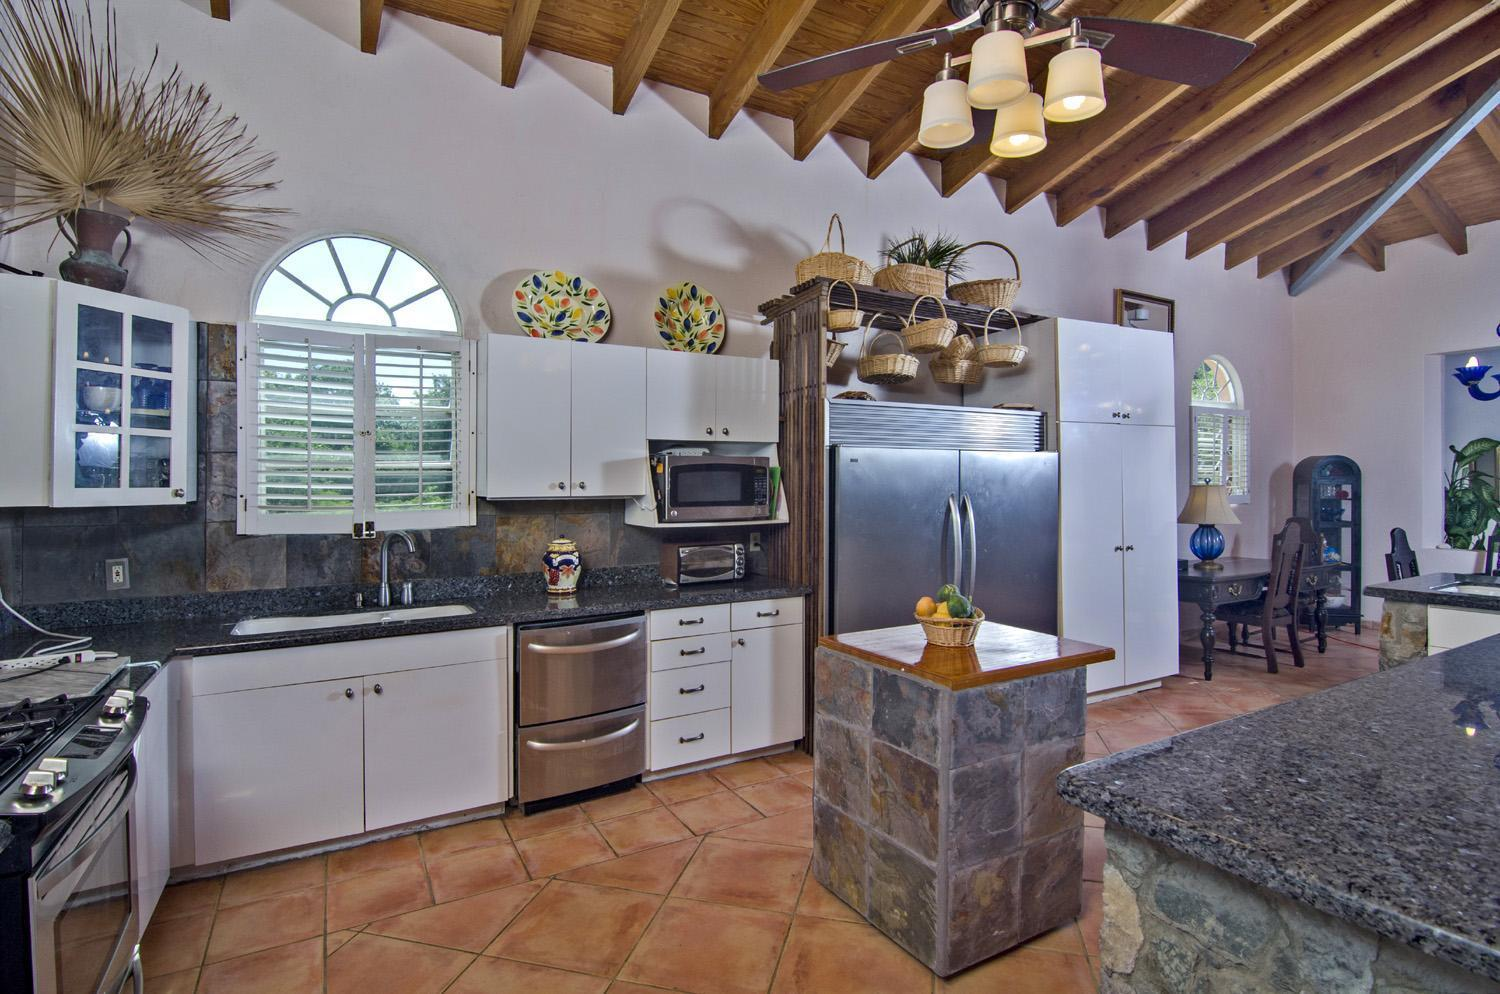 Great space in this kitchen with views.